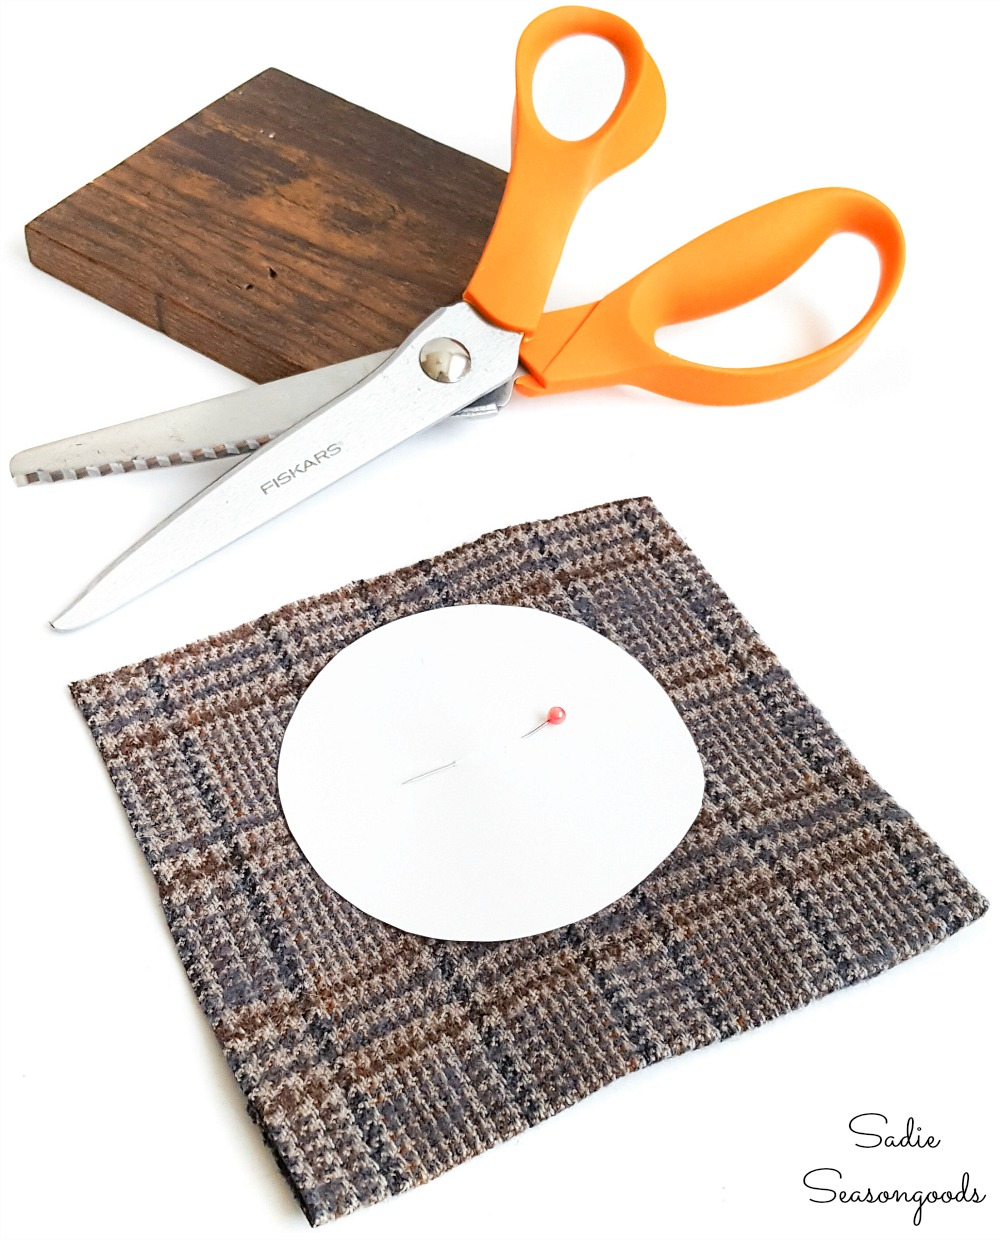 Decorating a wooden coaster set with tweed material